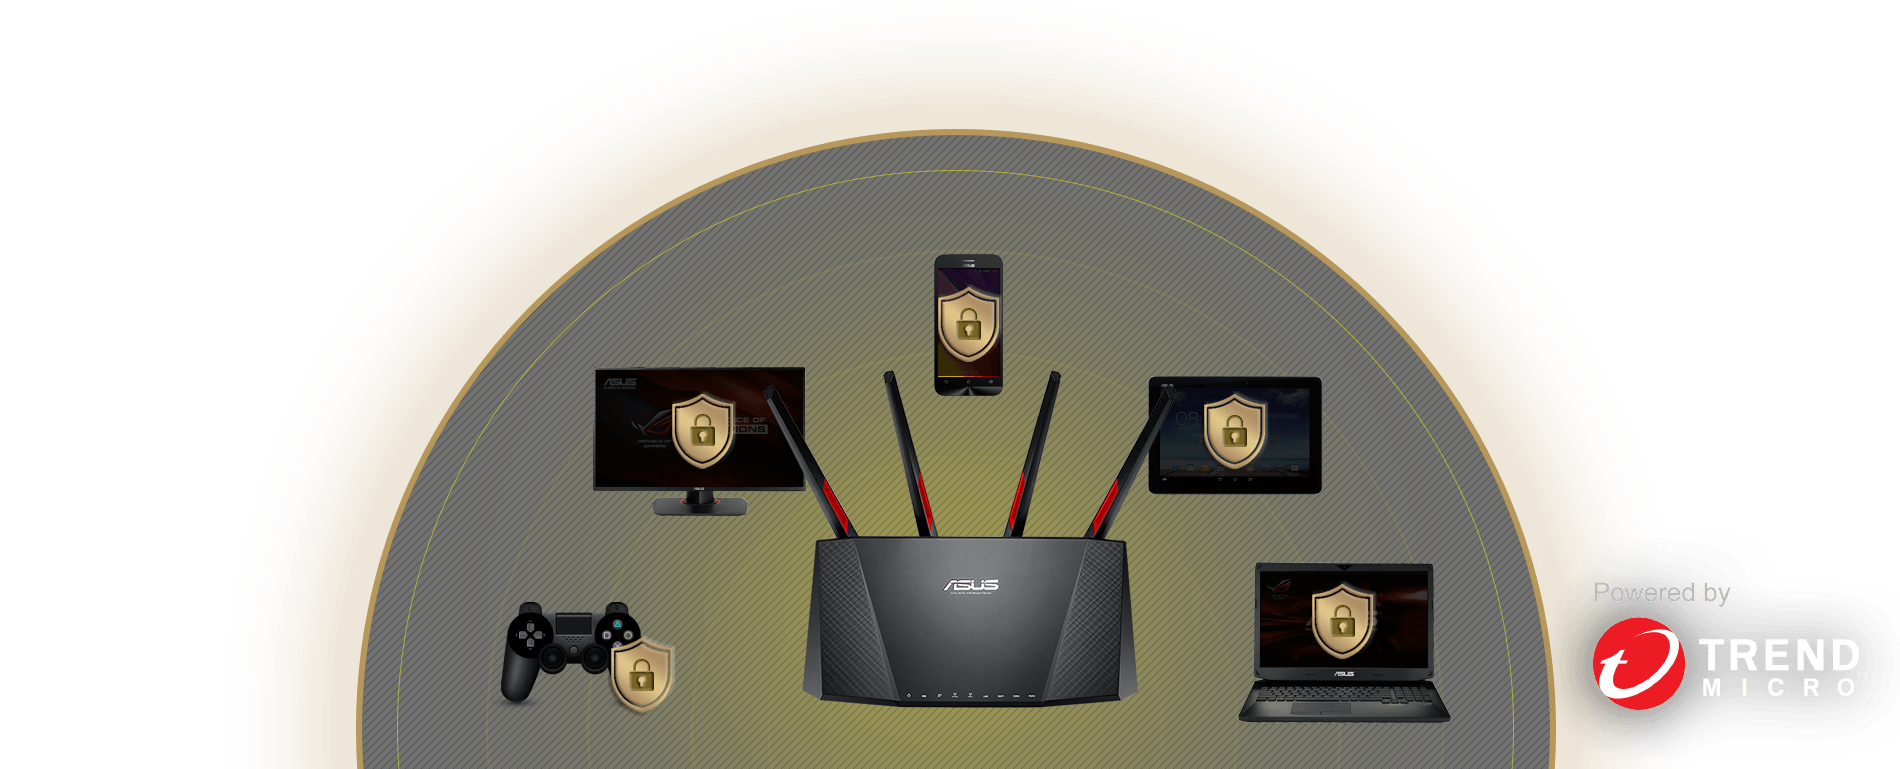 ASUS DSL-AC68VG with AiProtection powered by Trend Micro protects all connected devices.